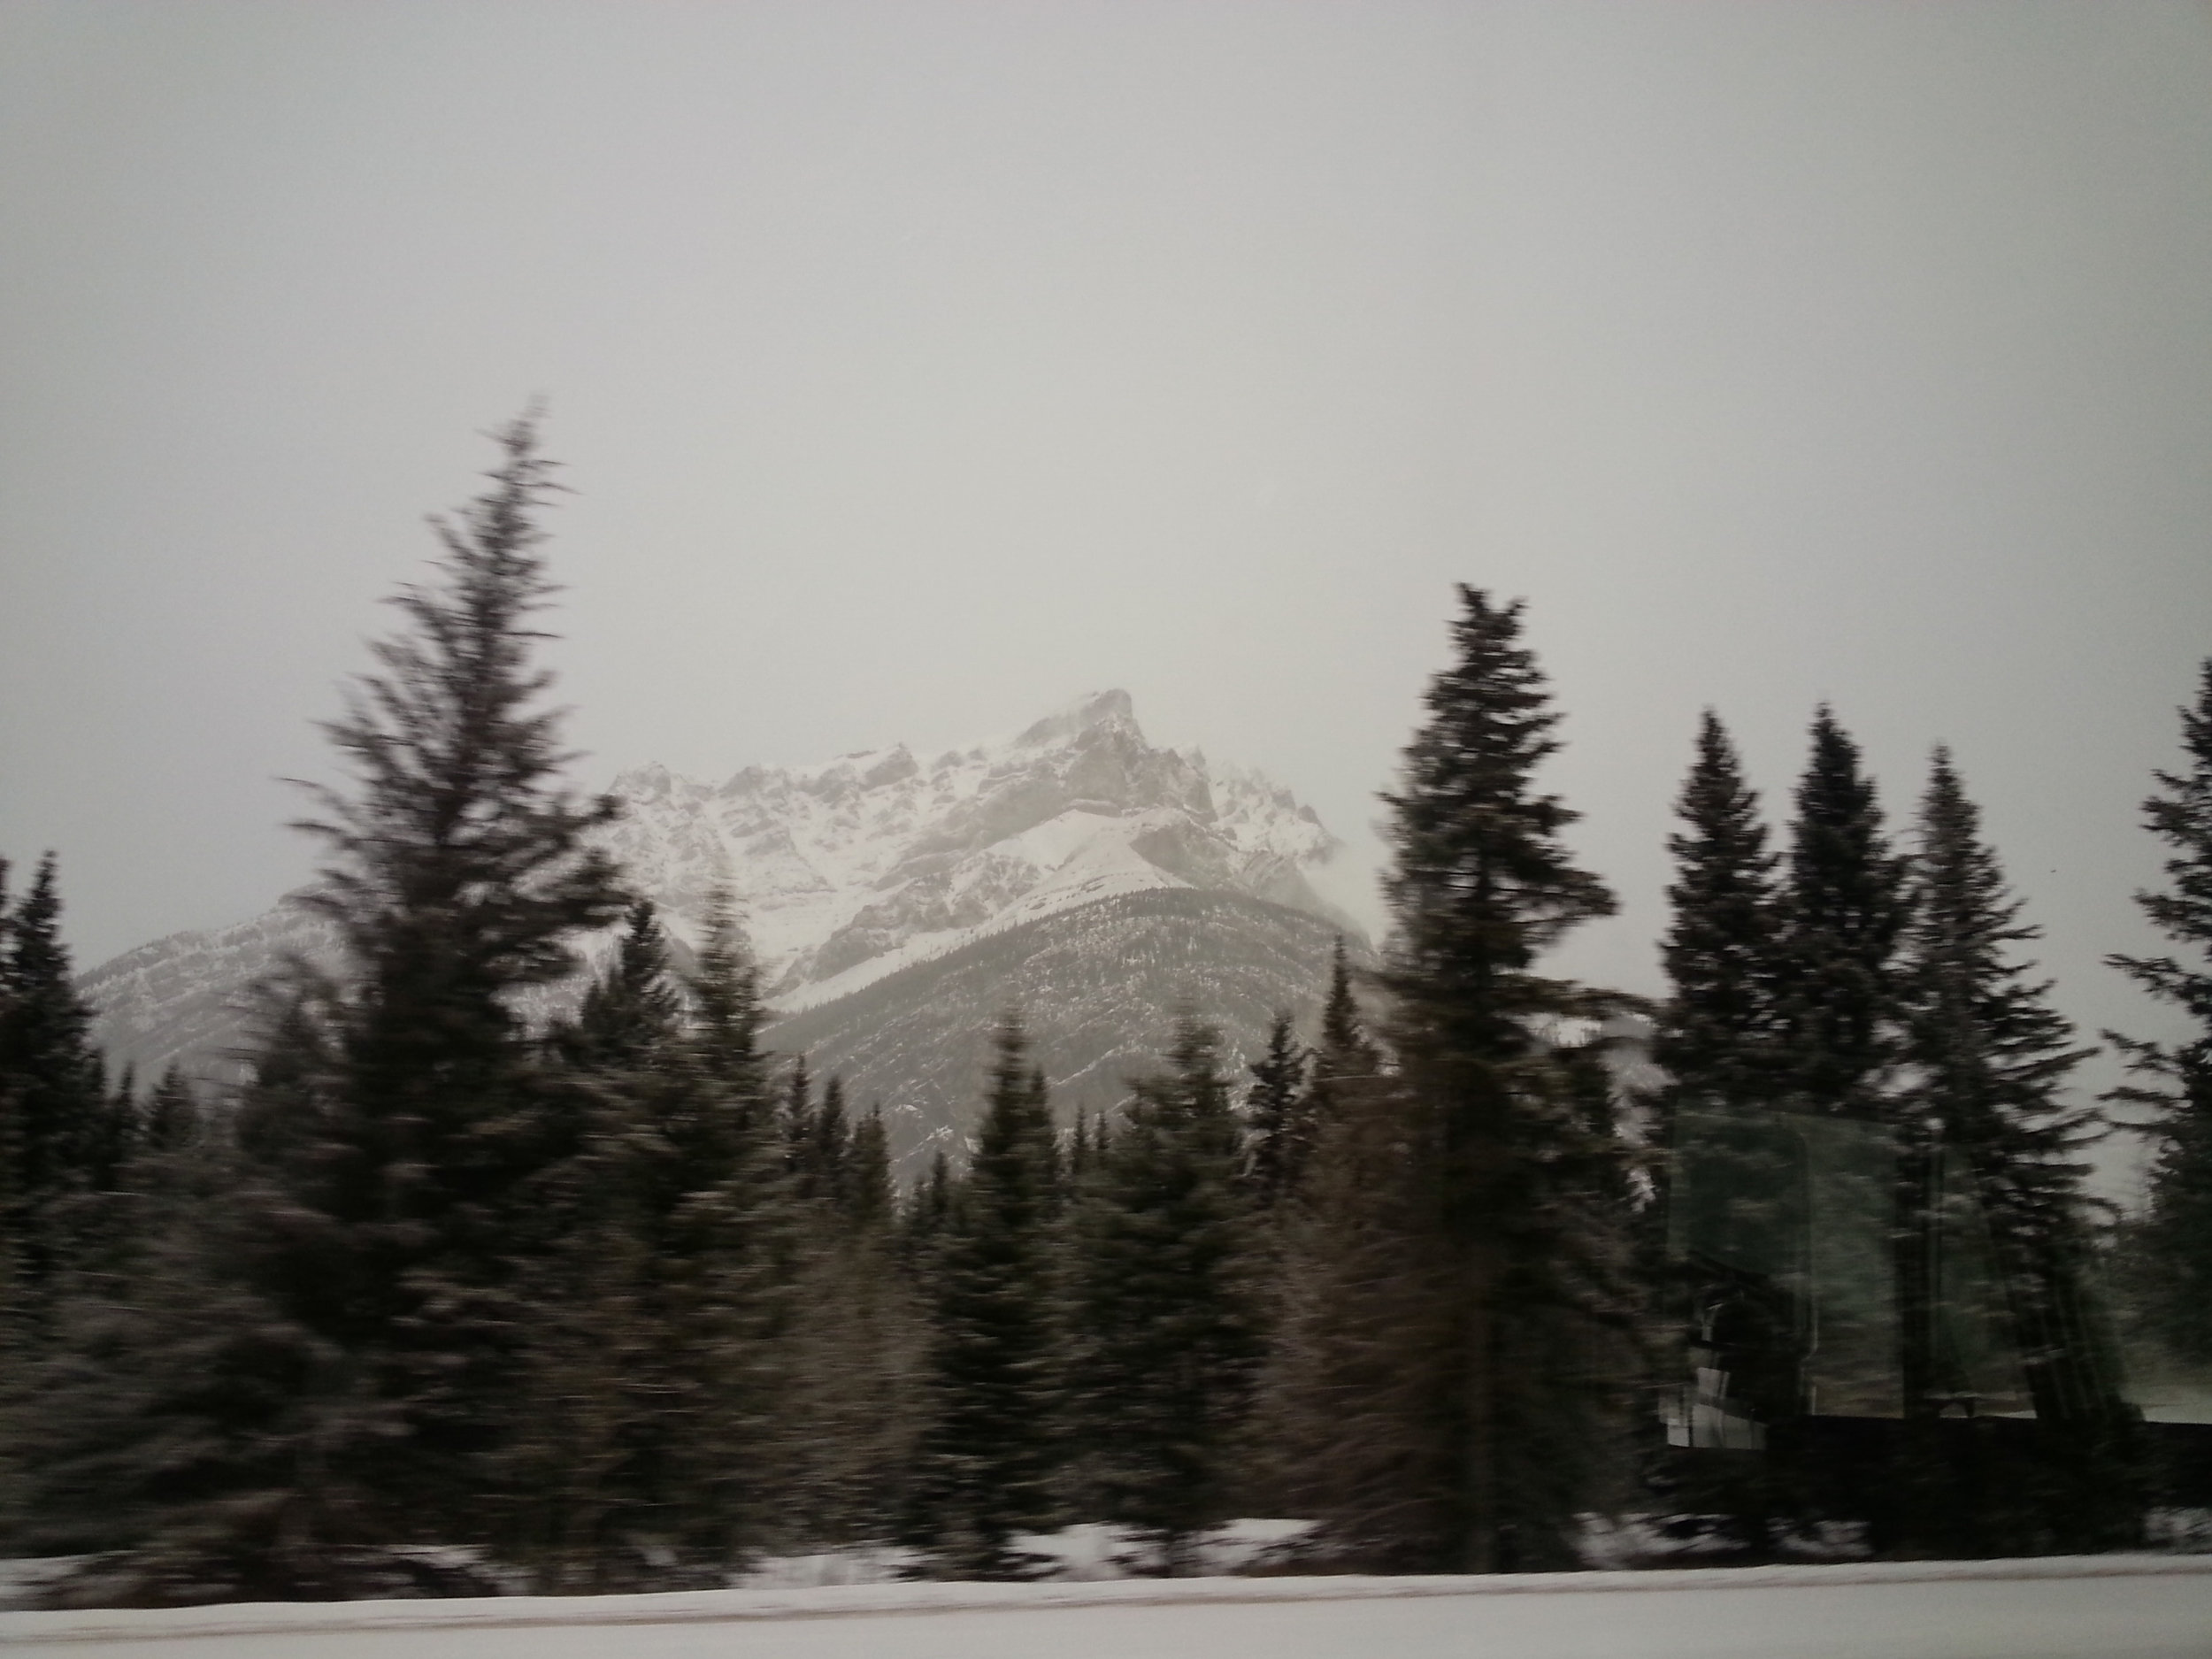 Mountains on the way to Calgary